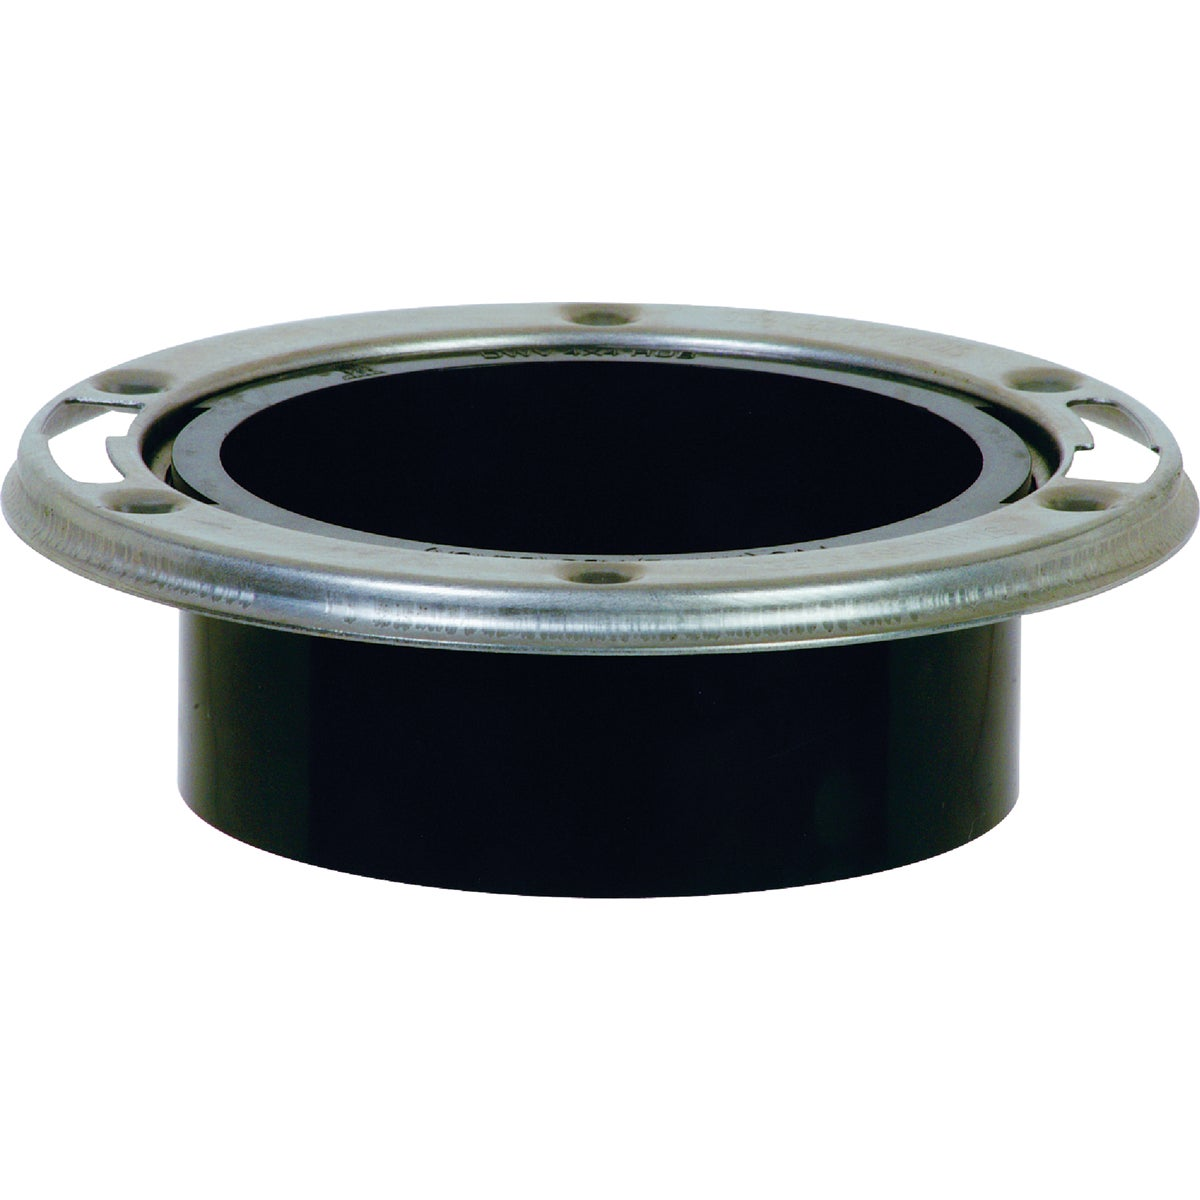 "4""HUB SS ABS CLST FLANGE - 886-4AM by Sioux Chief Mfg"